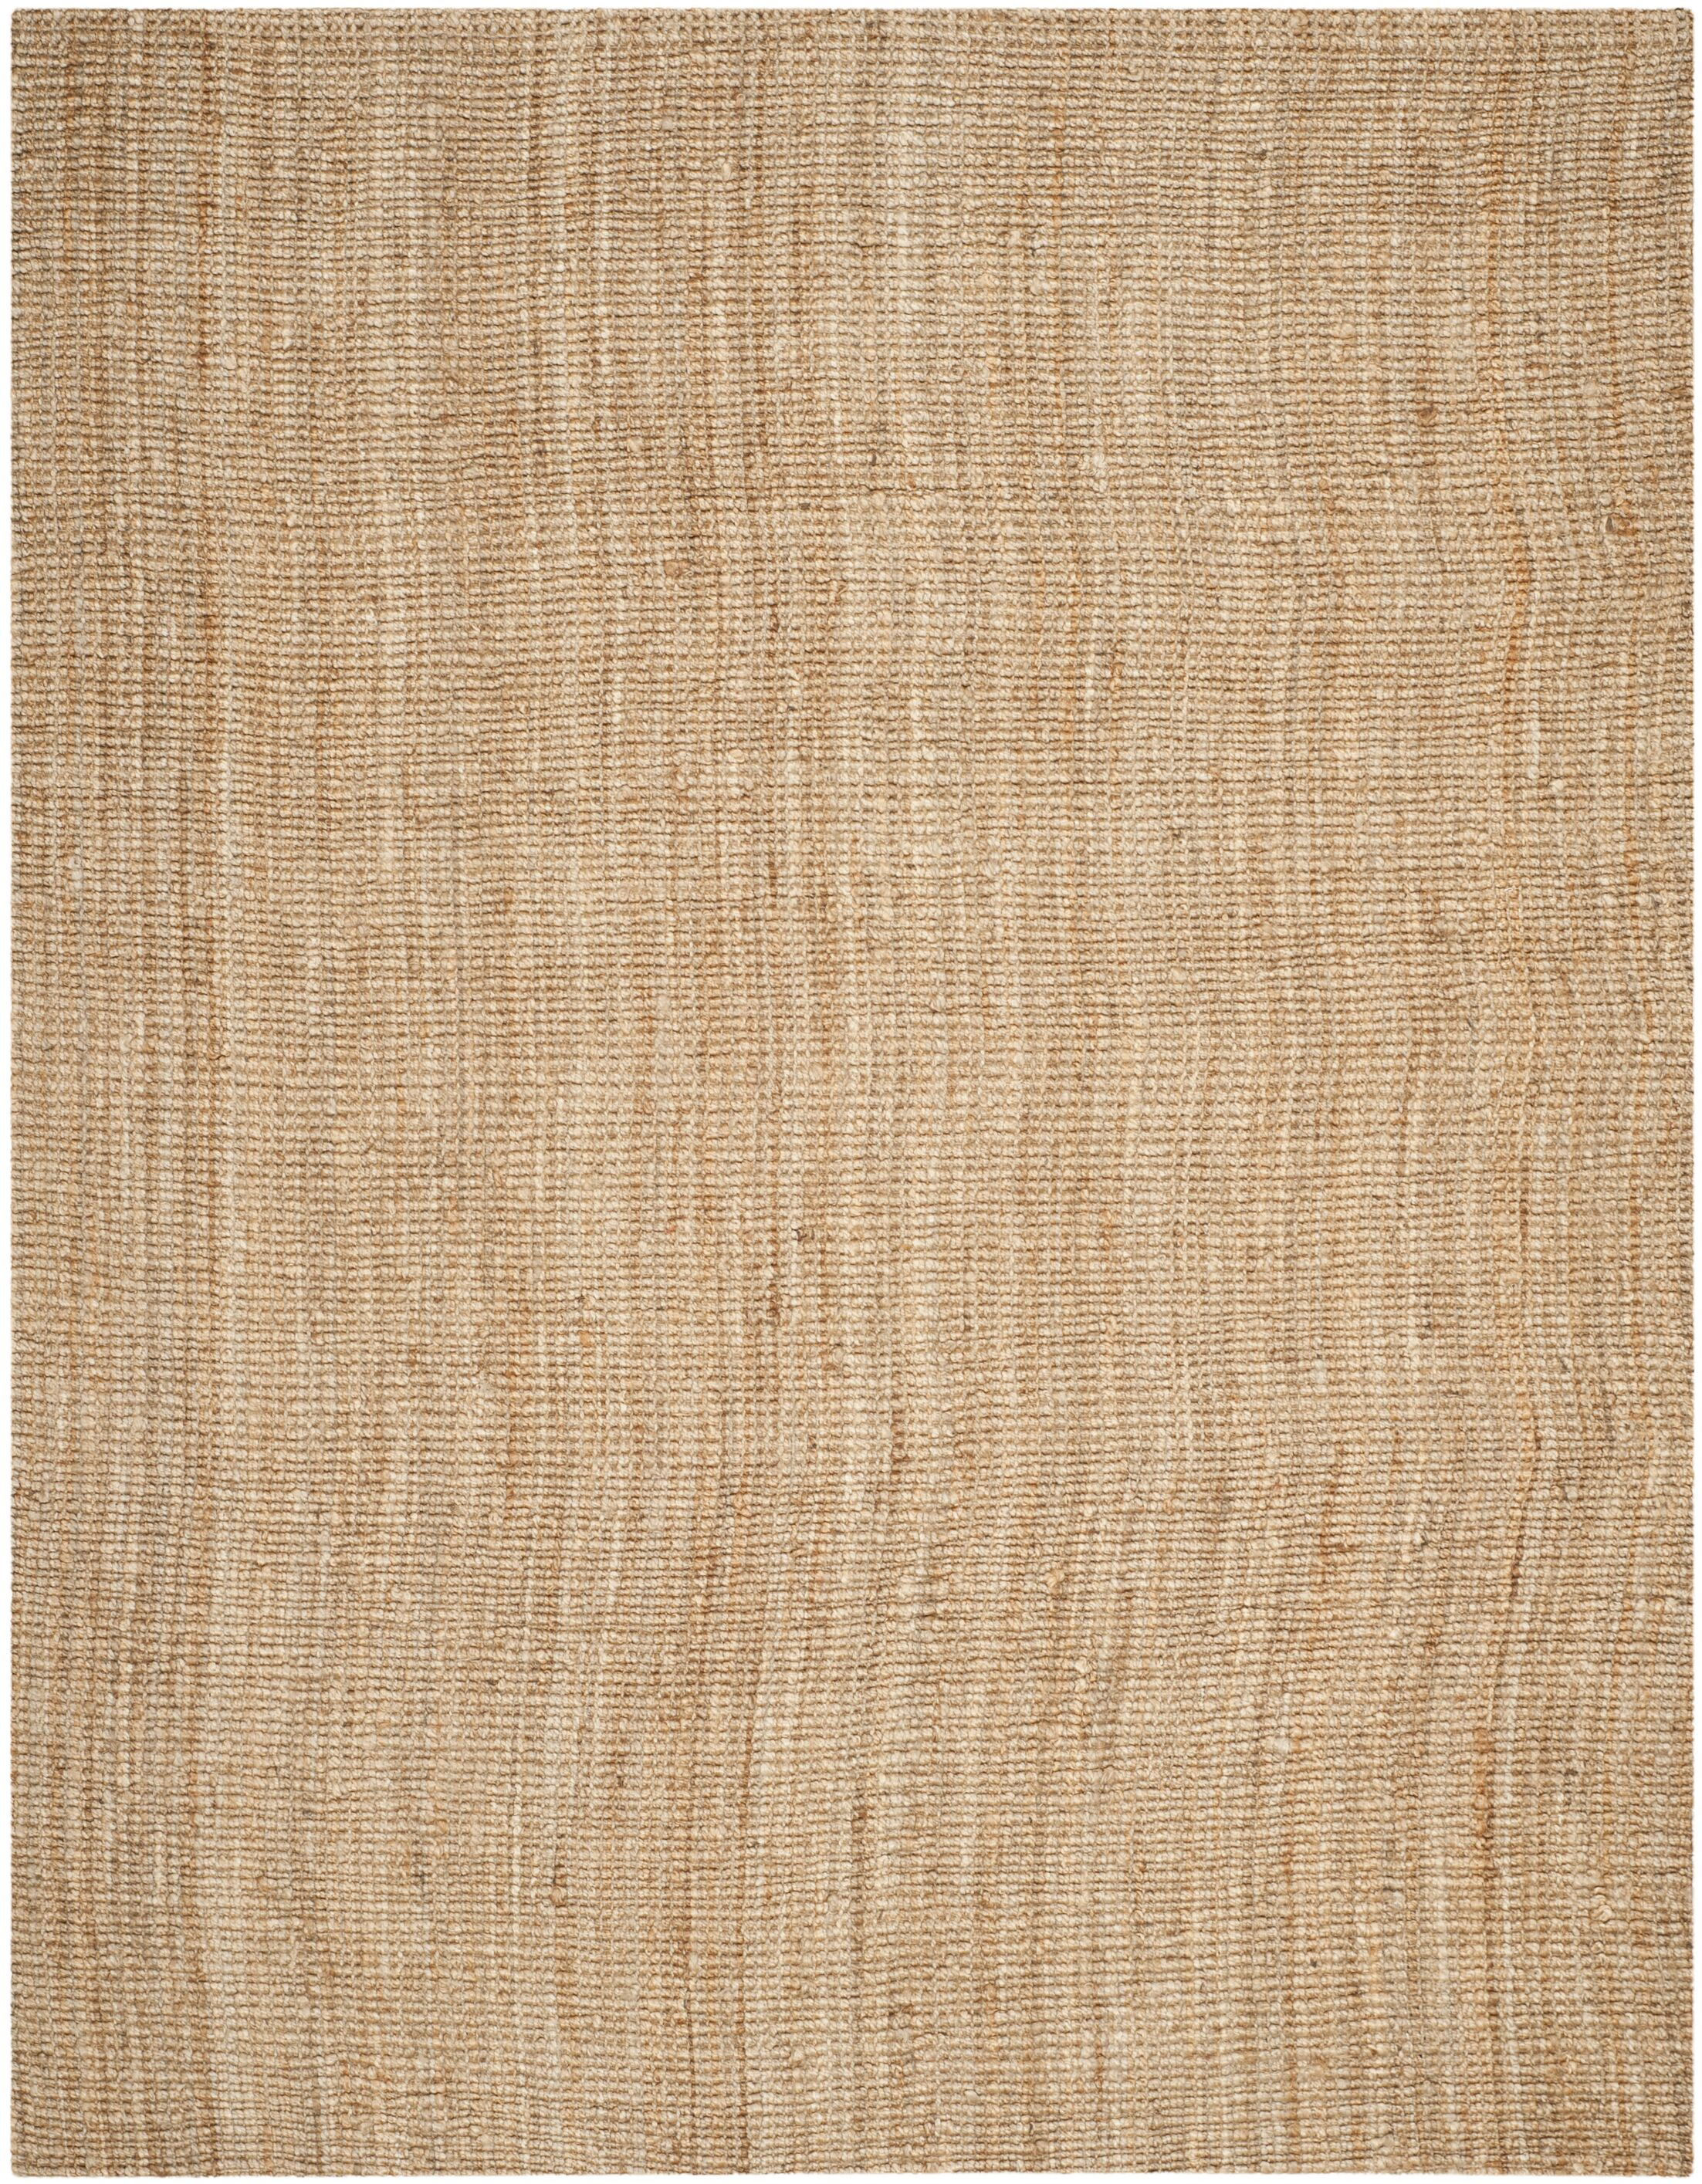 Gaines Power Loom Natural Area Rug Rug Size: Rectangle 8' x 10'